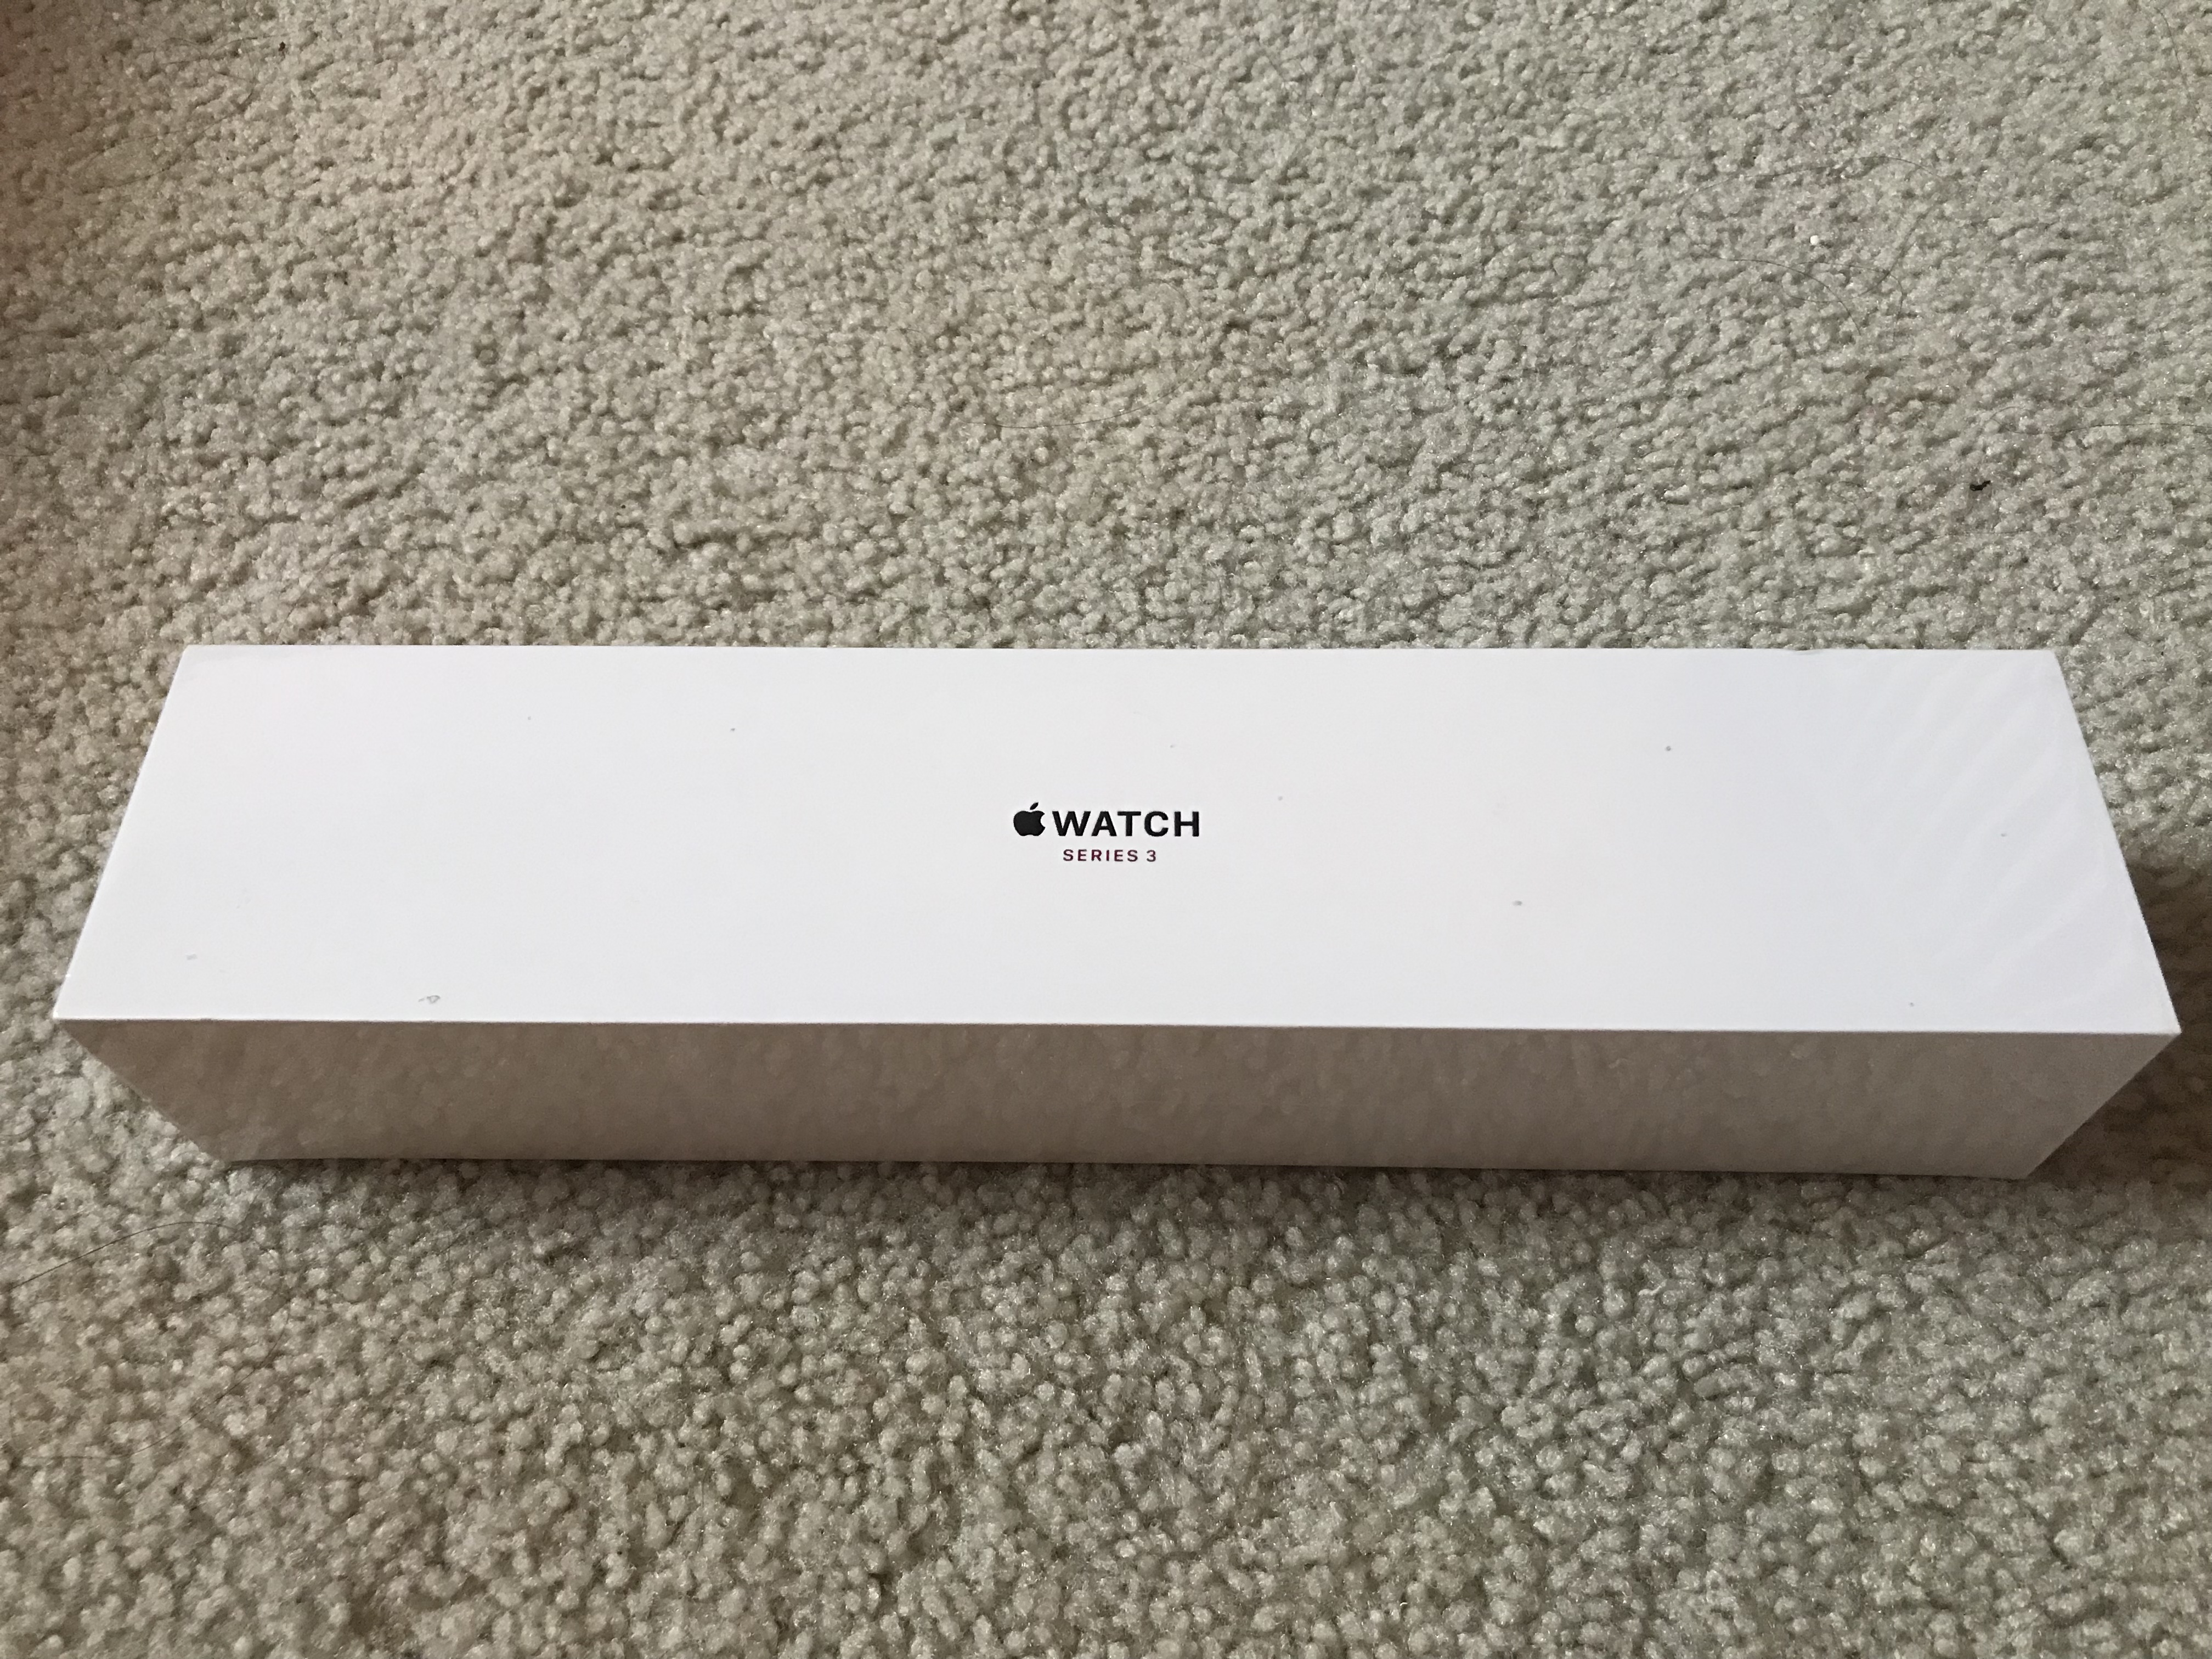 [BRAND NEW] Apple Watch Series 3 38mm Gold Al, Pink Sand Sport Band (GPS+Cellular)